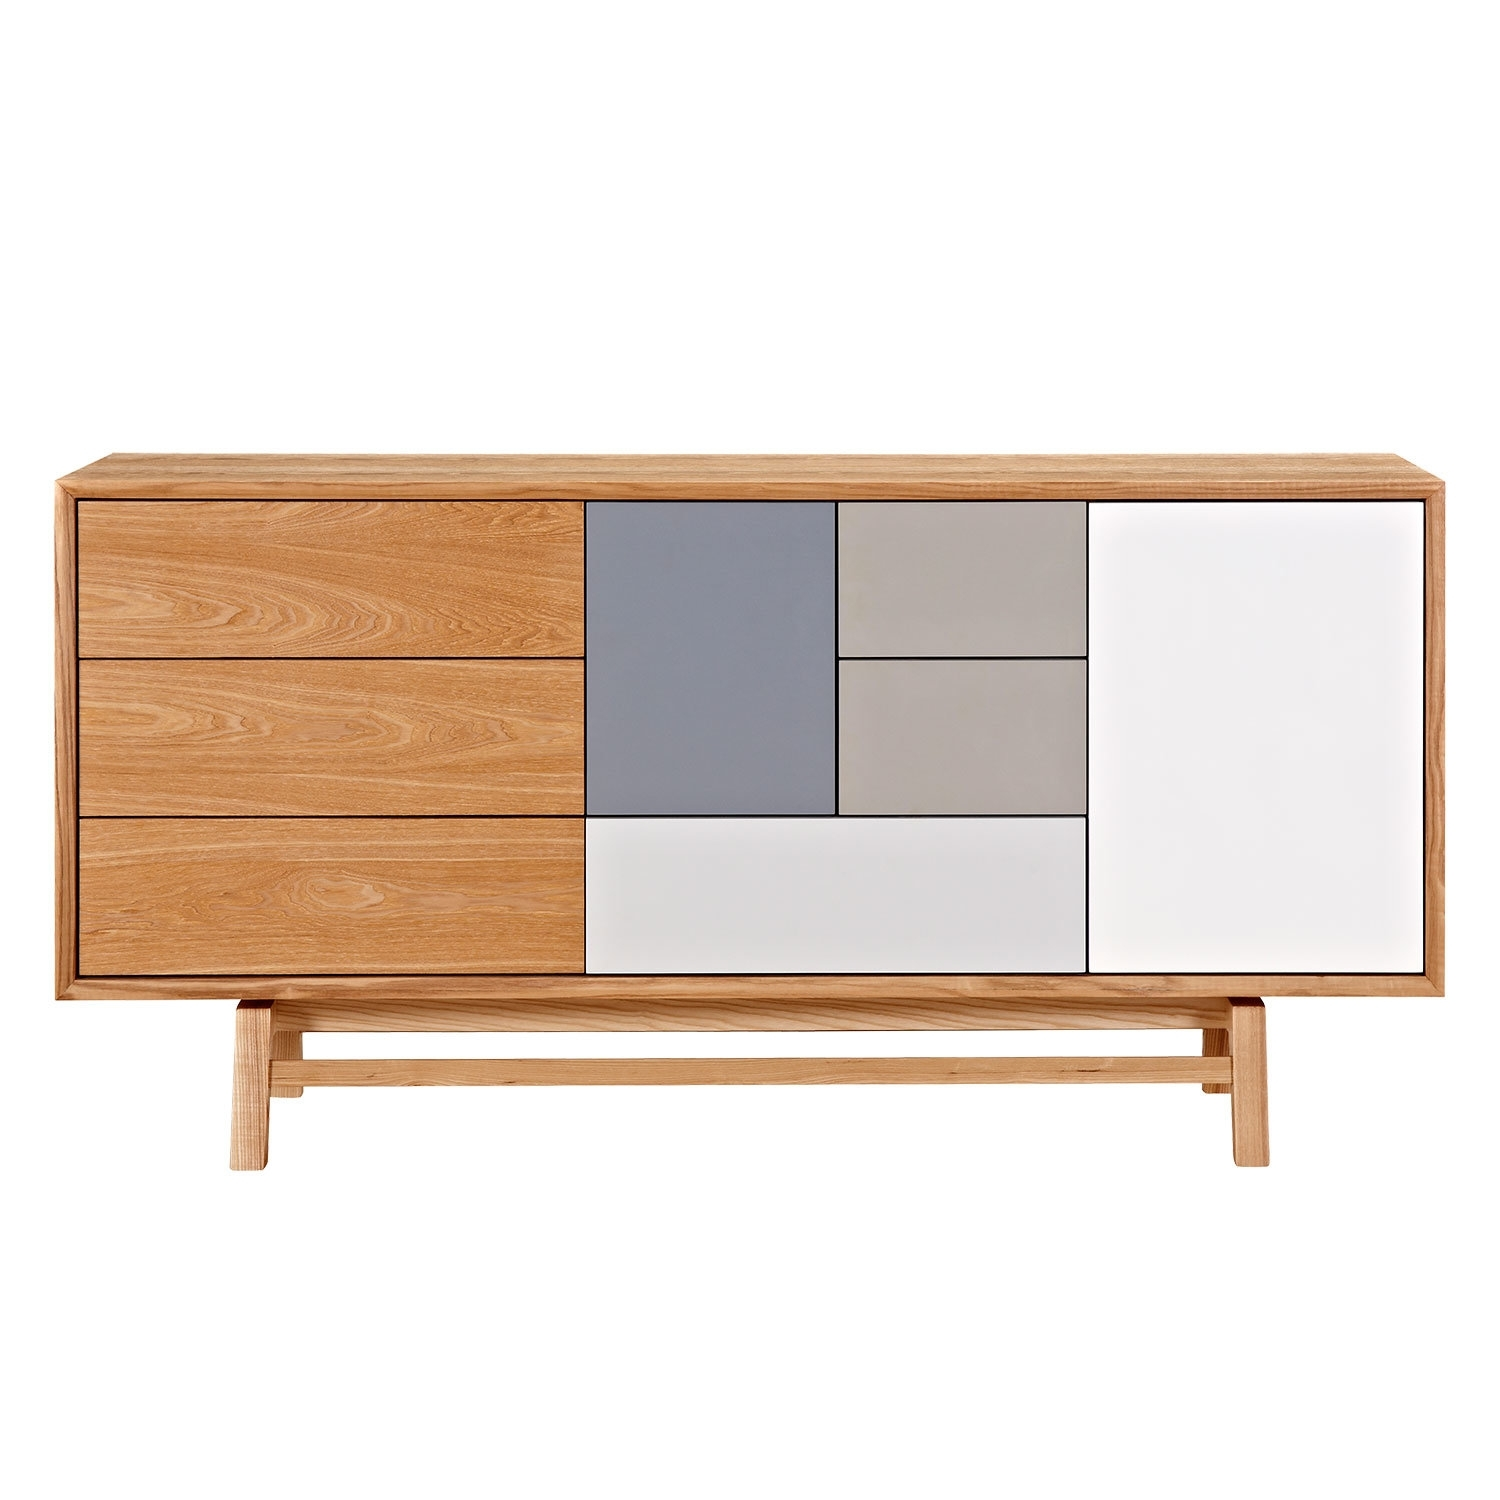 Nyekoncept Grane Sideboard | Wayfair With Regard To Open Shelf Brass 4 Drawer Sideboards (Photo 2 of 30)